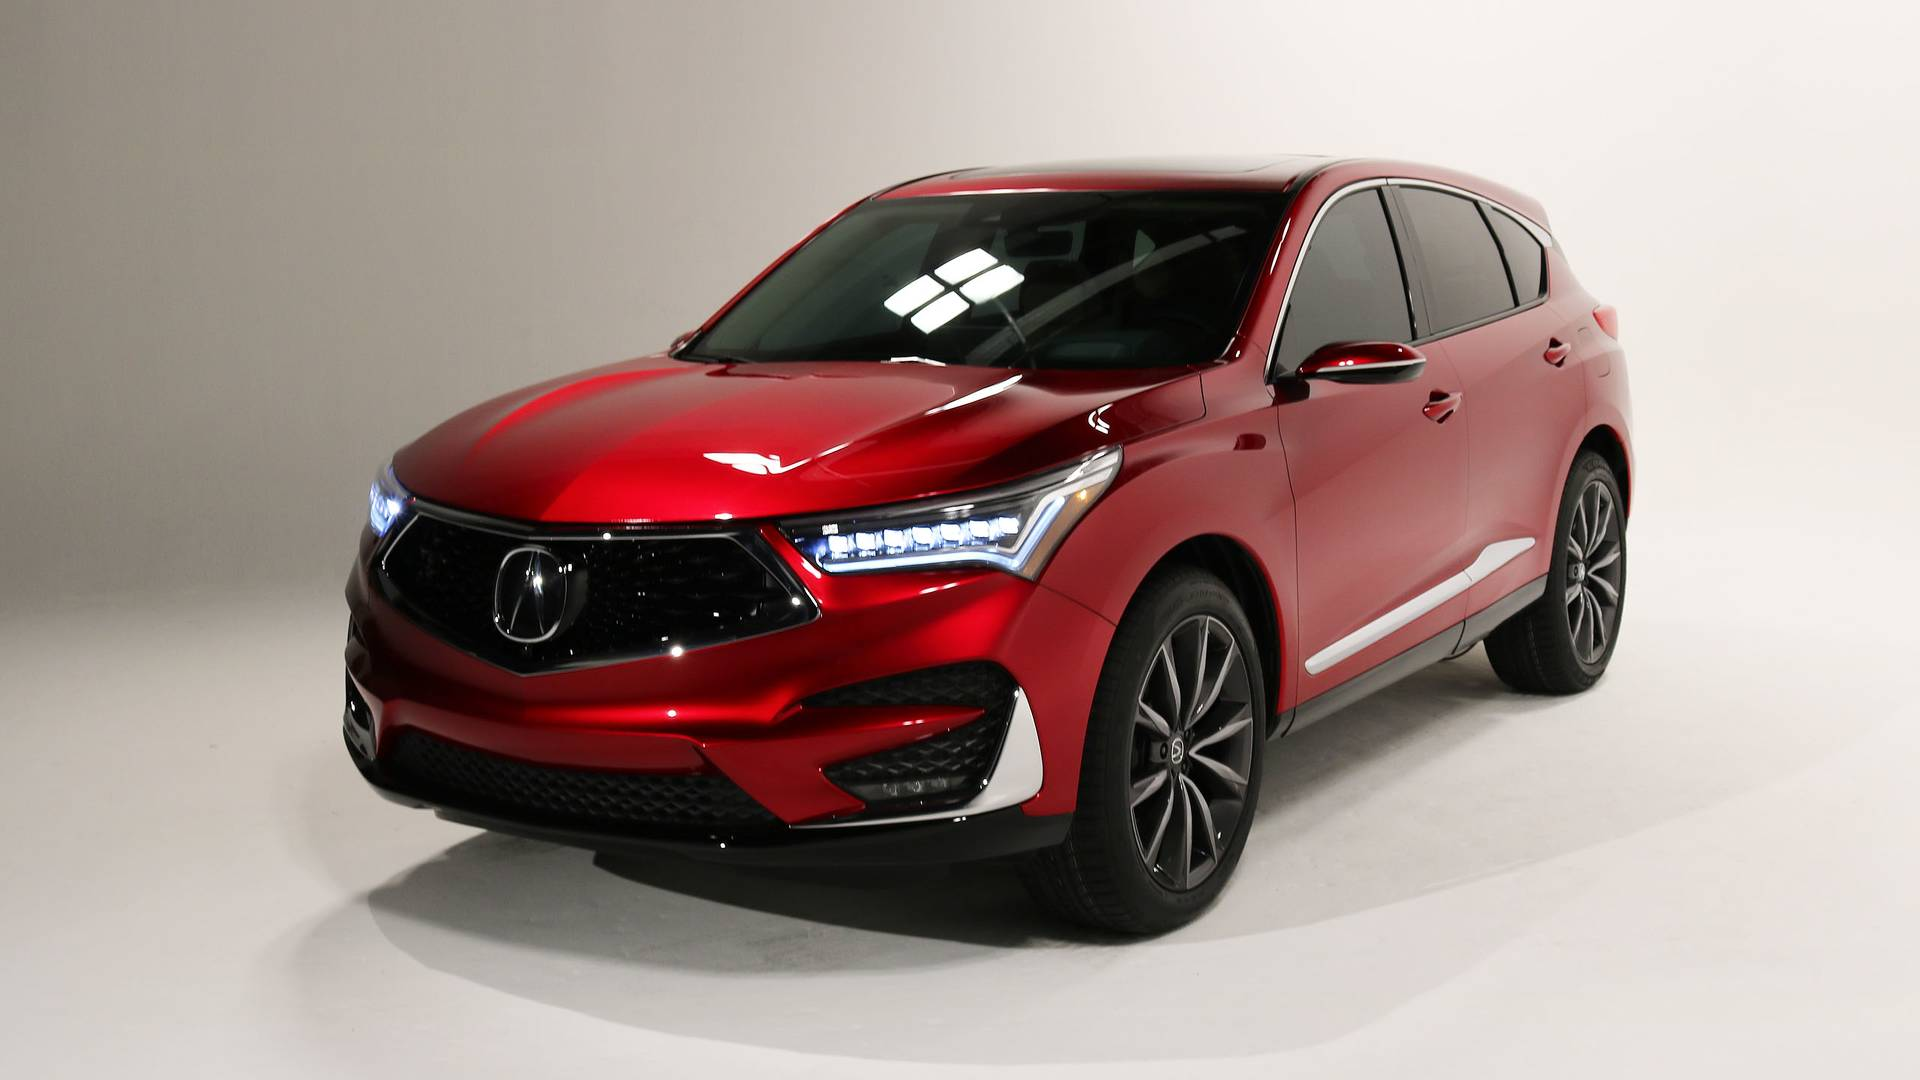 naias 2019 acura rdx concept is production ready. Black Bedroom Furniture Sets. Home Design Ideas